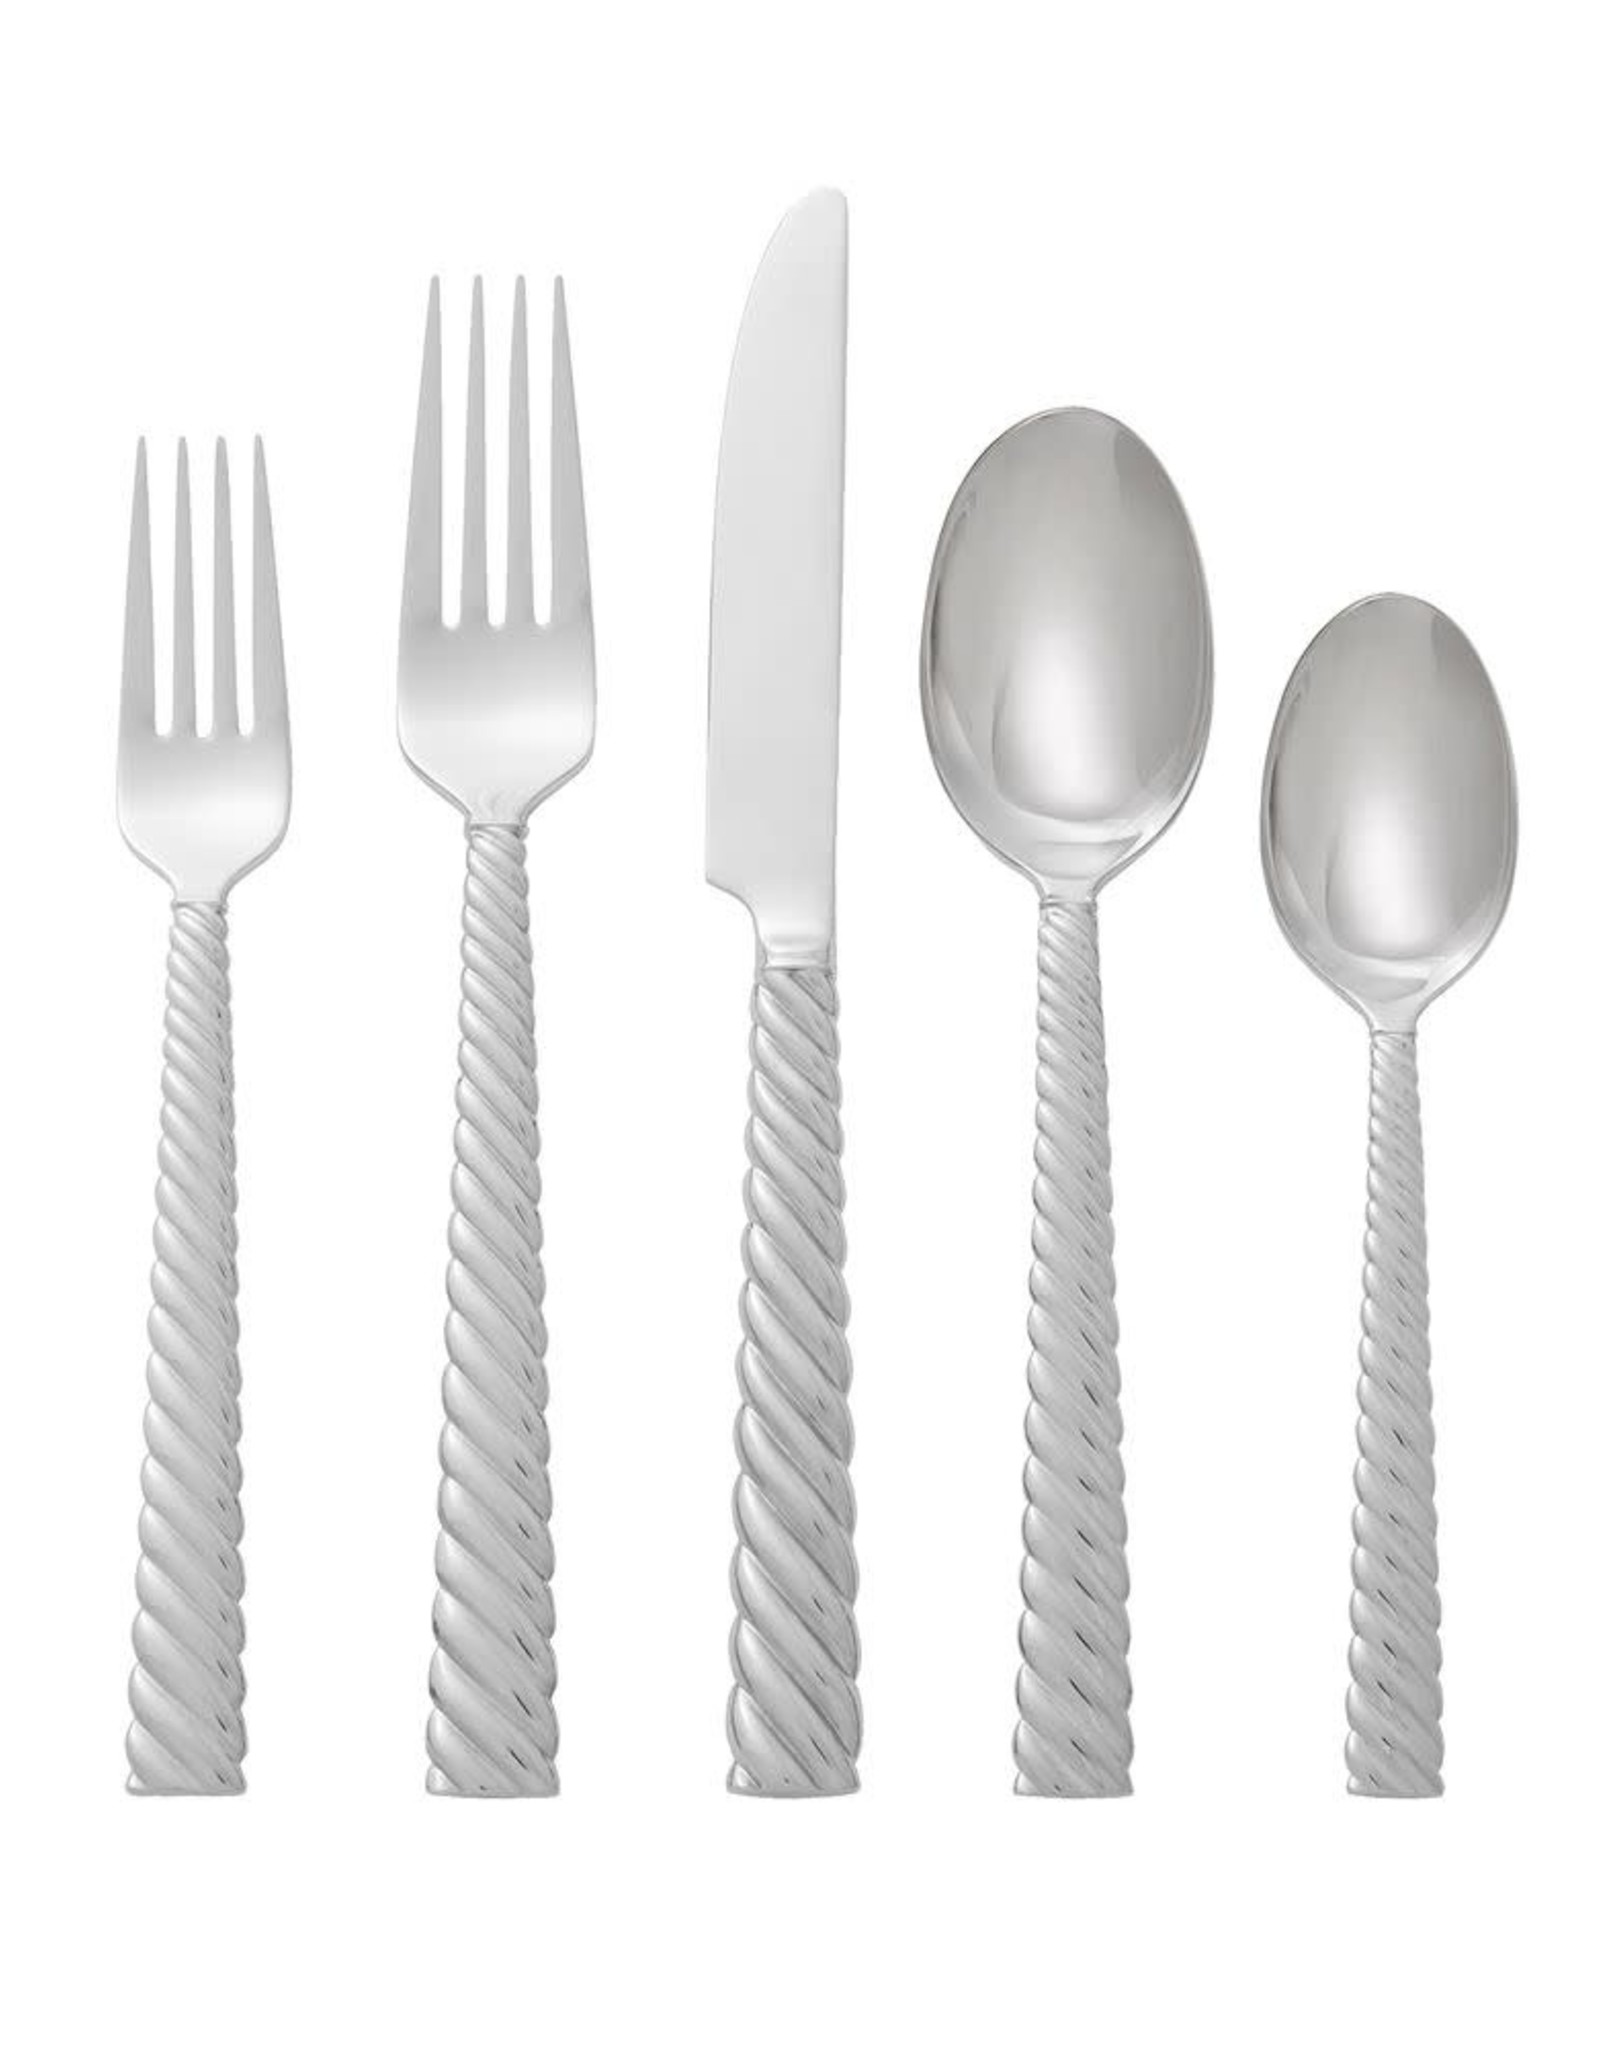 Michael Aram Twist 5 Pcs Flatware Set Silver